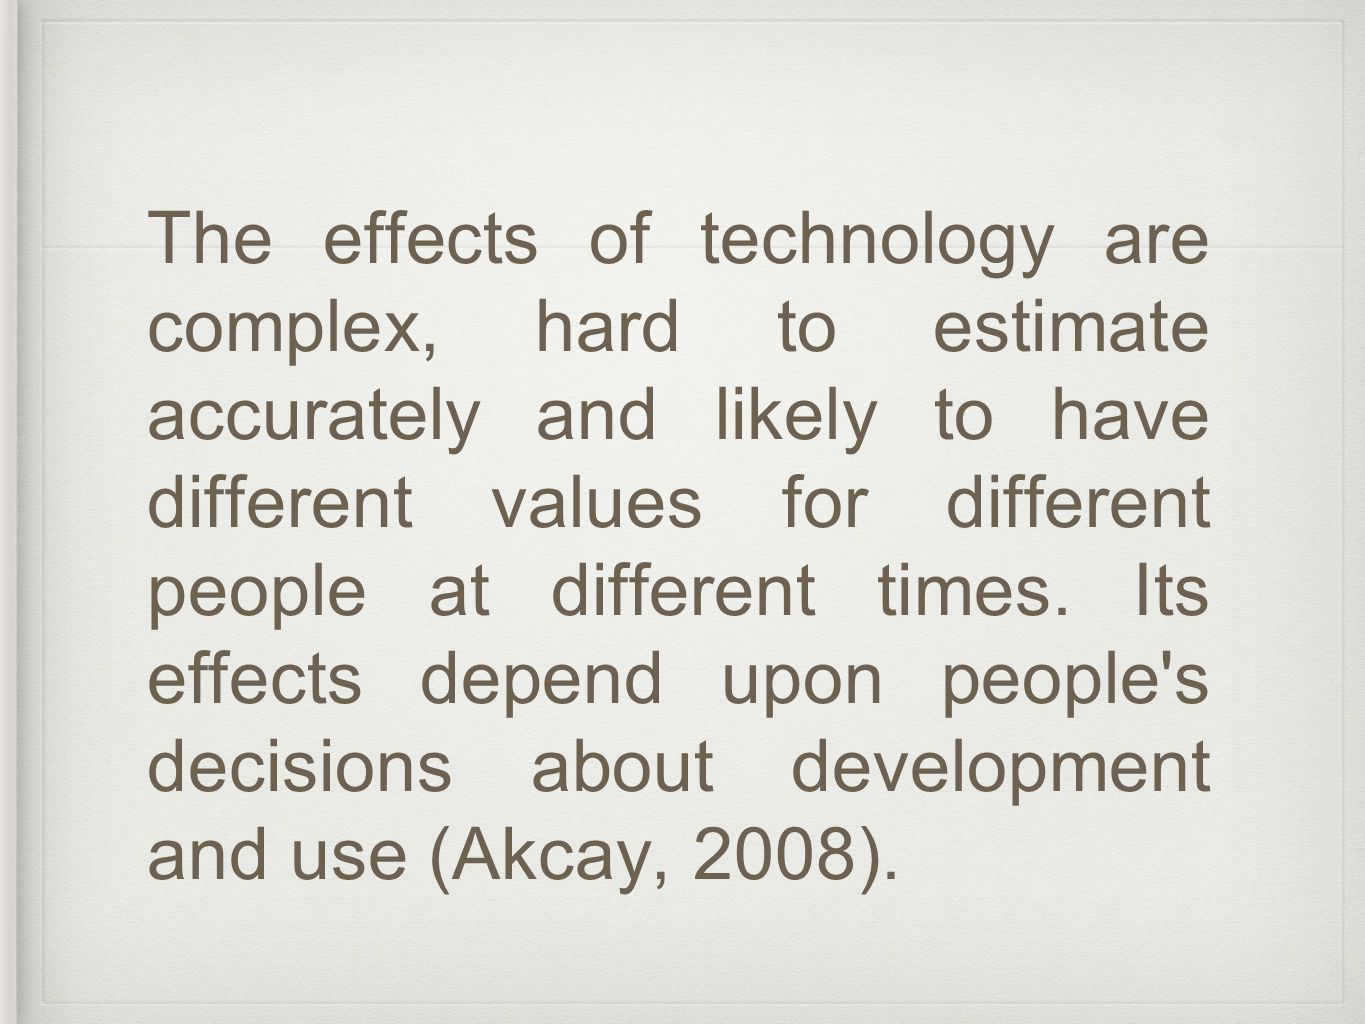 The effects of technology are complex, hard to estimate accurately and likely to have different values for different people at different times.